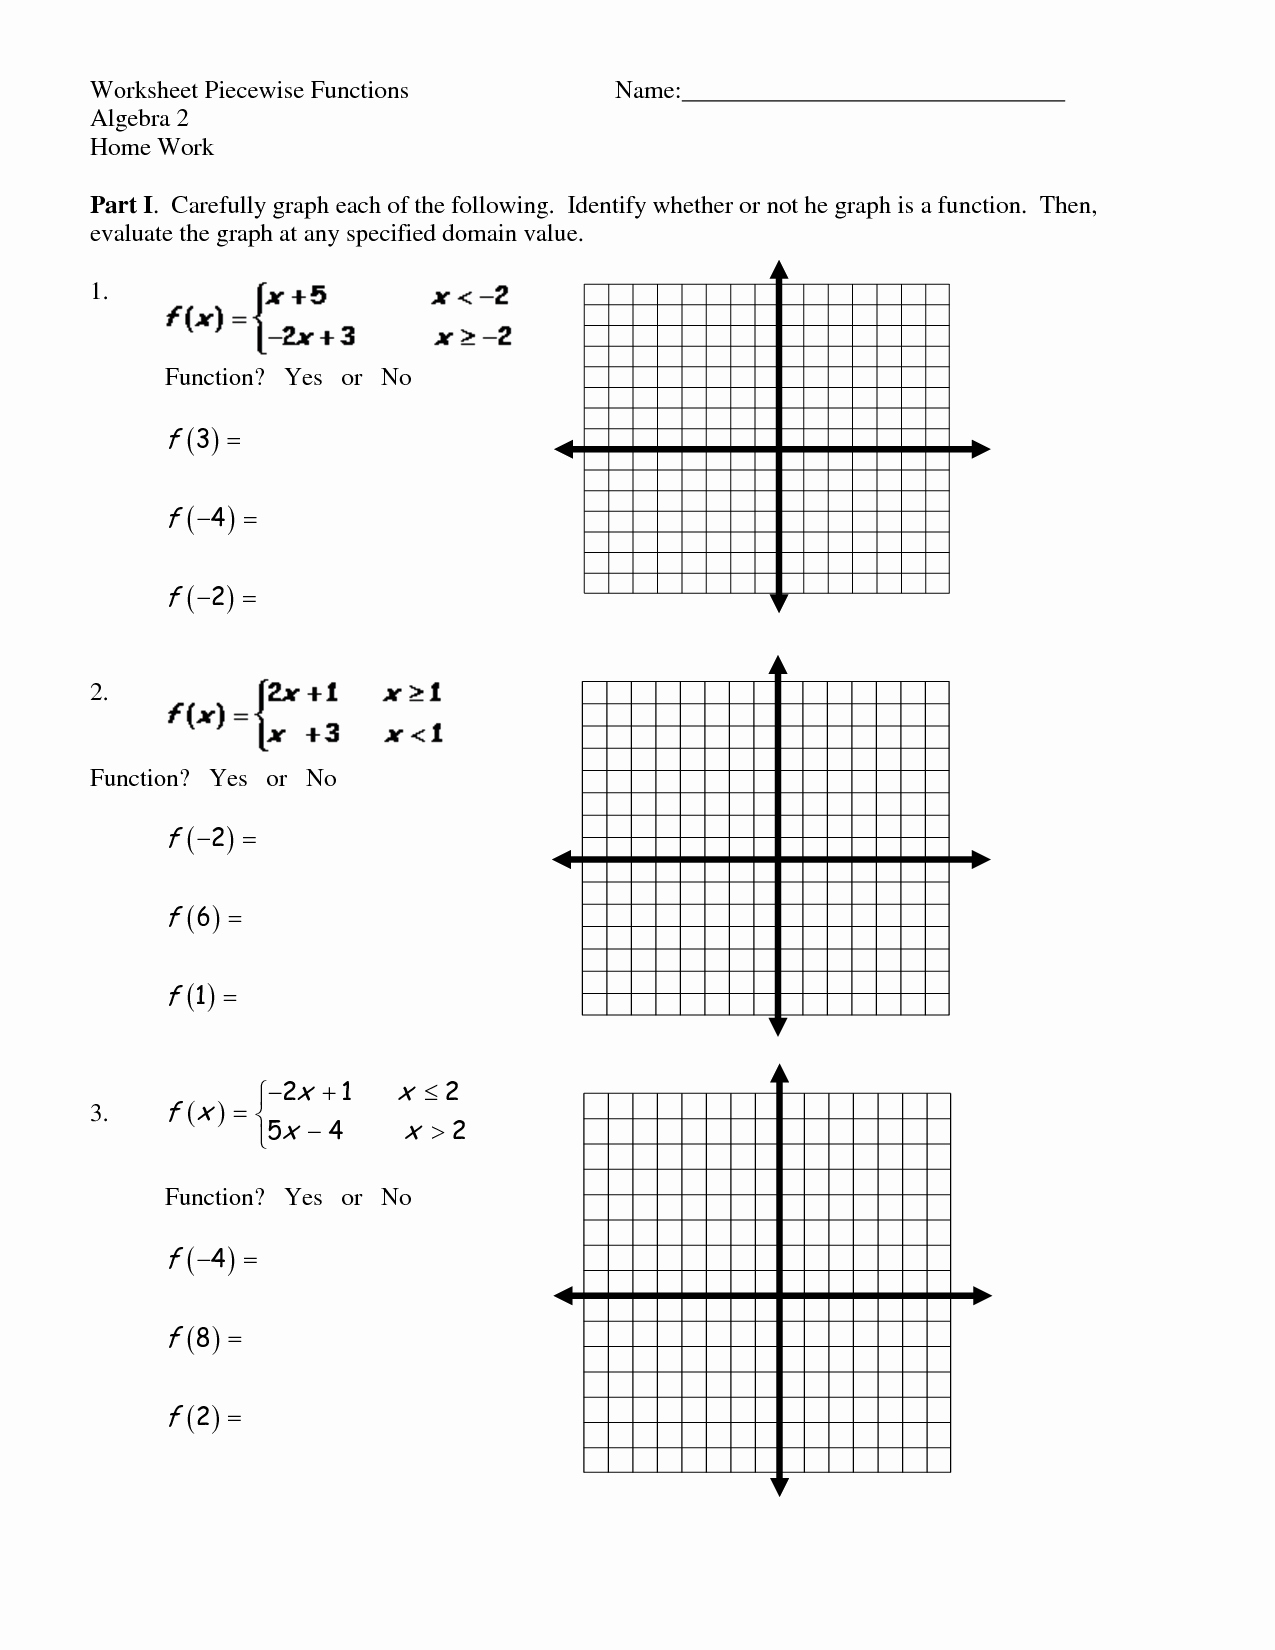 Worksheet Piecewise Functions Answer Key Unique 12 Best Of Graph Linear Equations Worksheet Answers